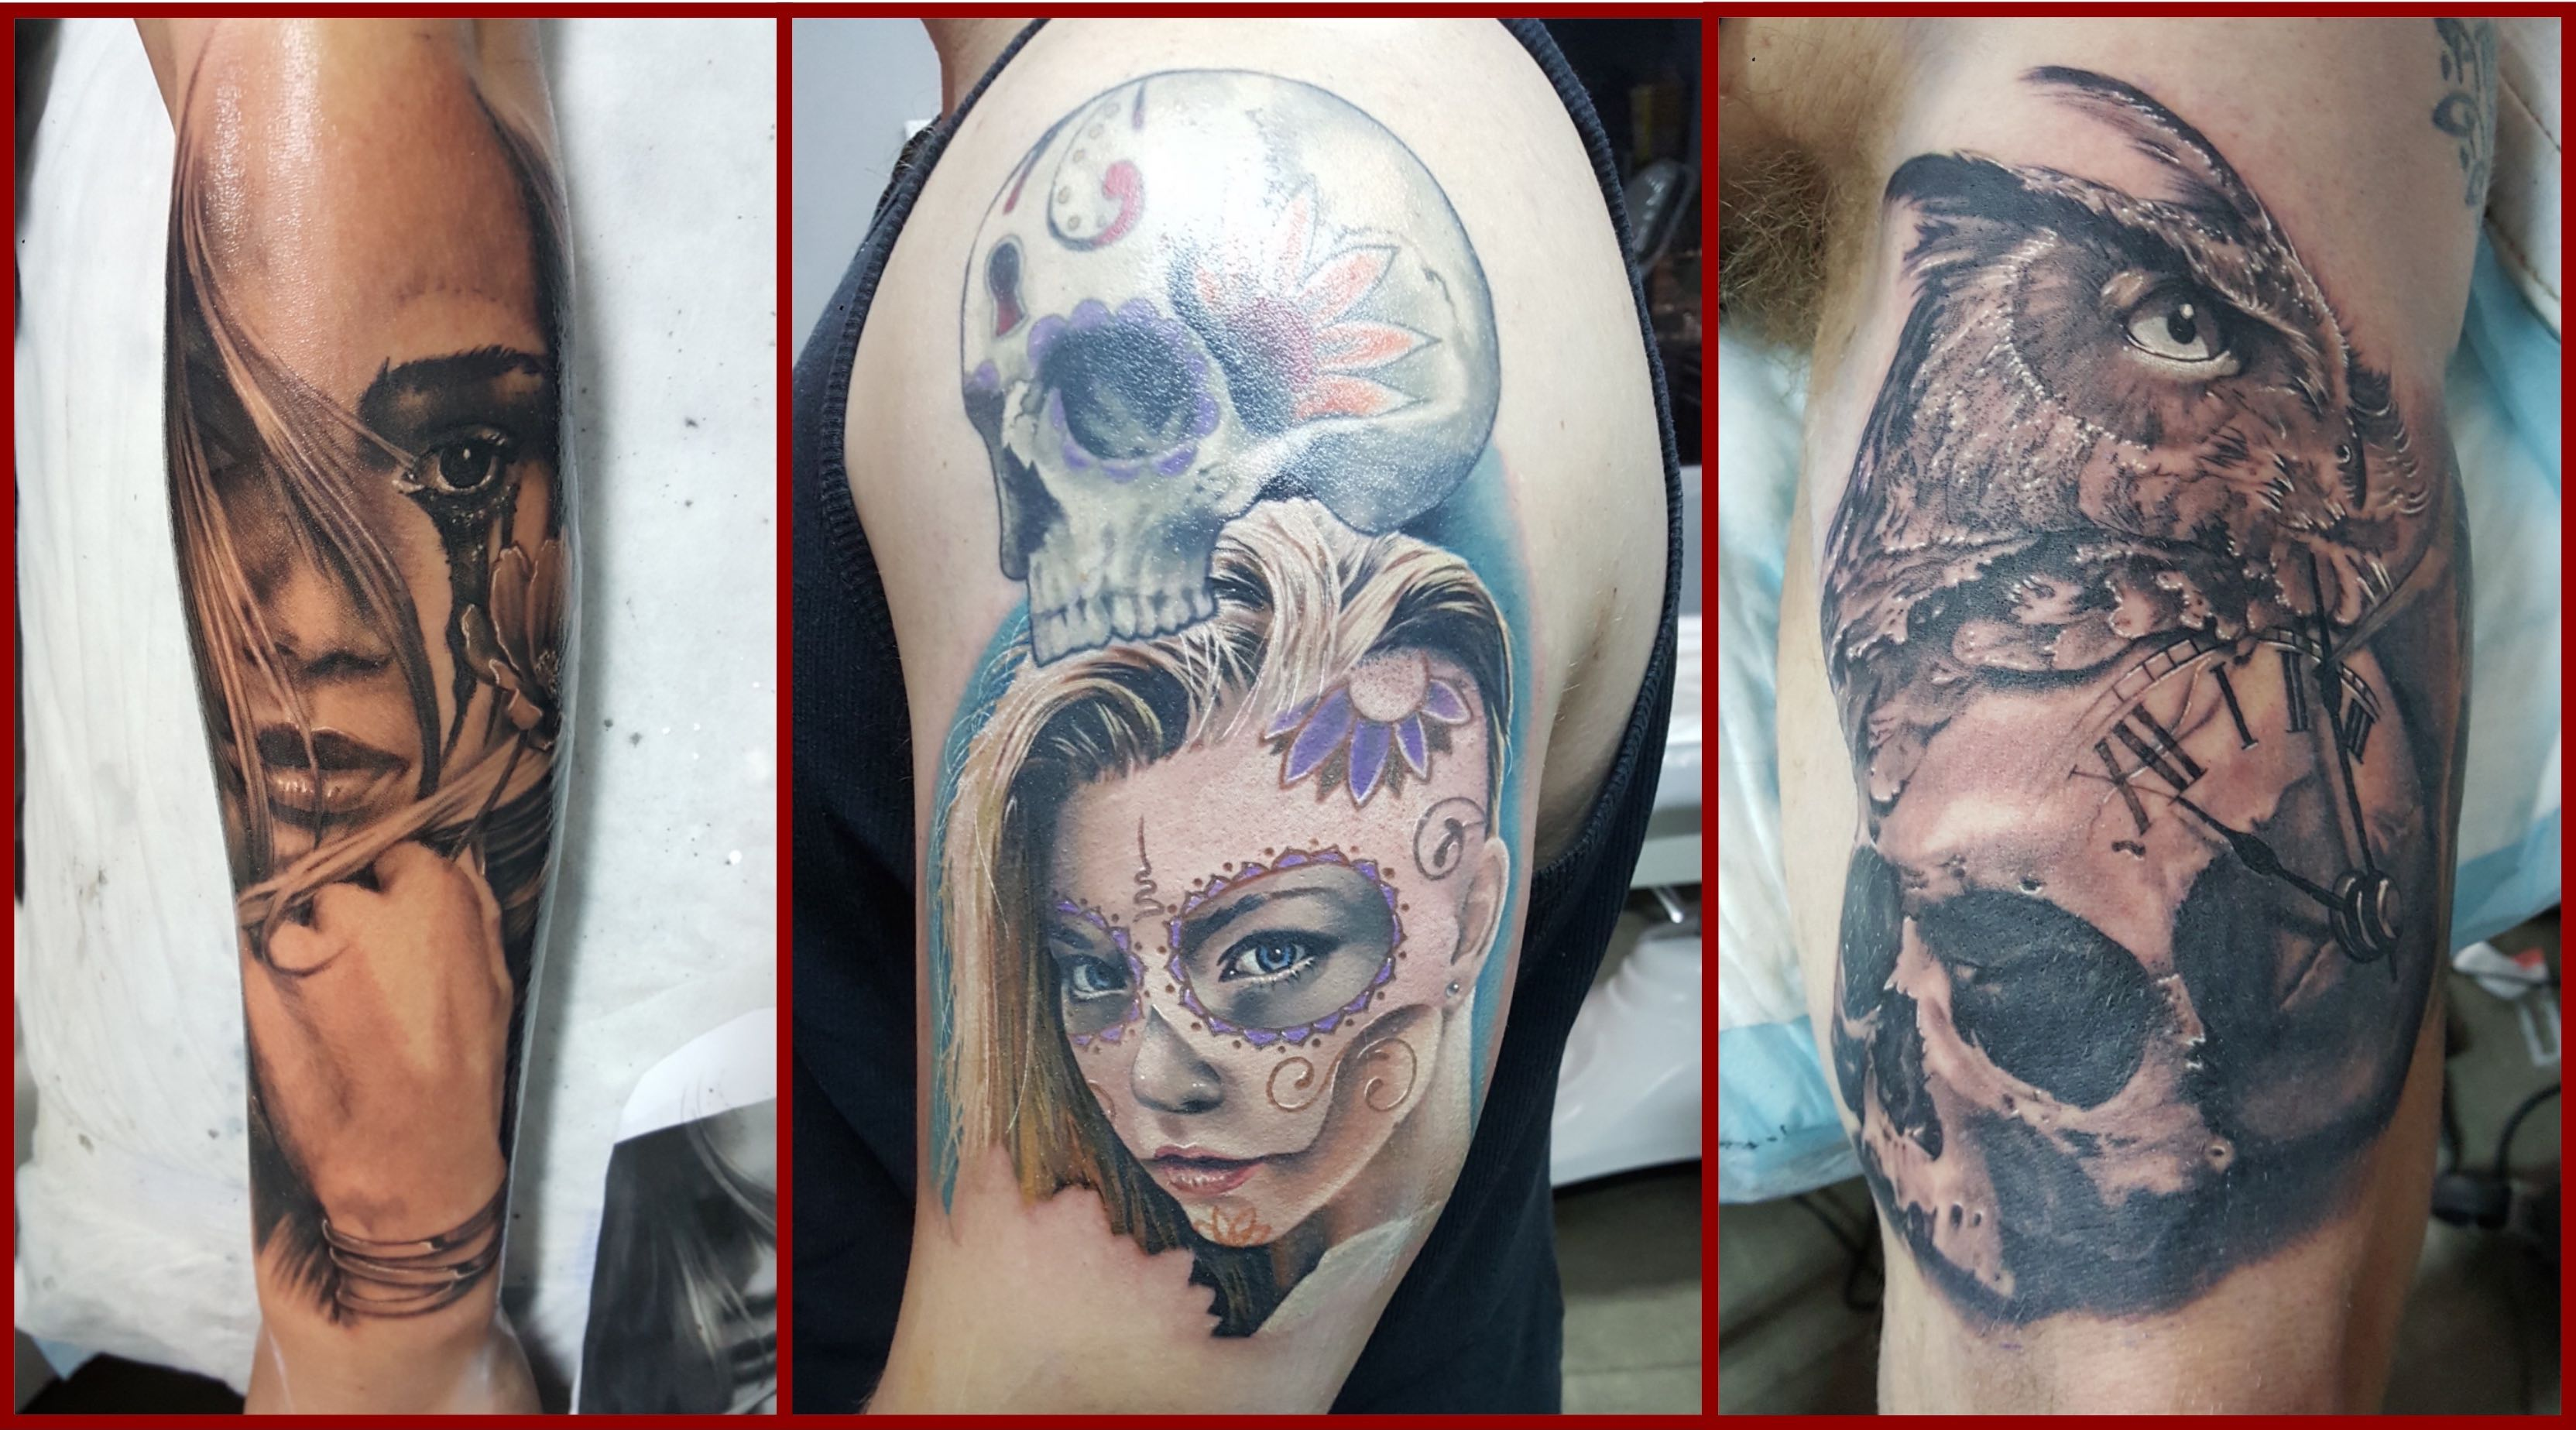 Tattoo work done by Bryan Du Rand